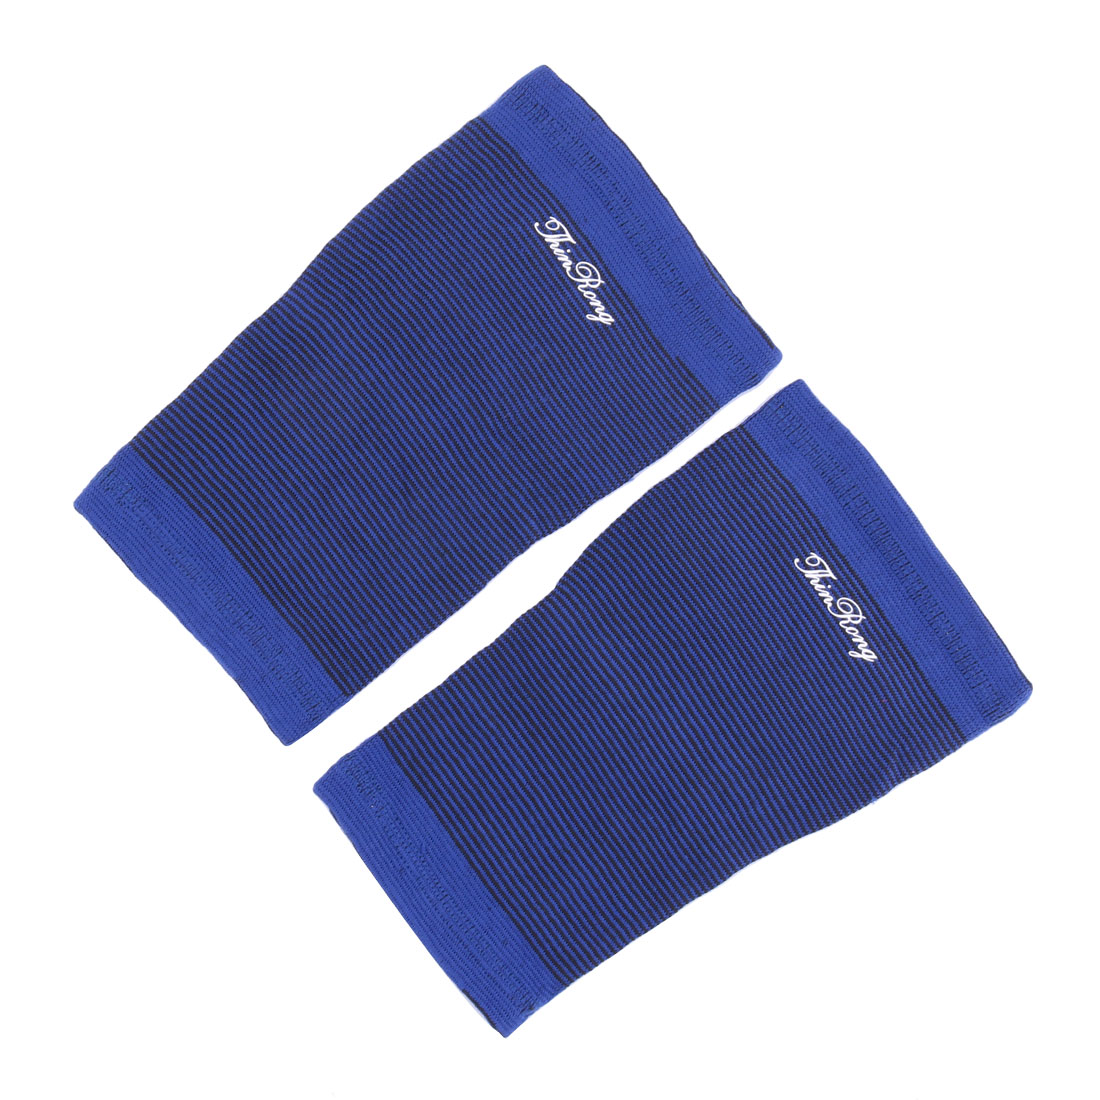 Sports Exercise Running Cotton Blends Pinstriped Calf Support Blue Black 2pcs